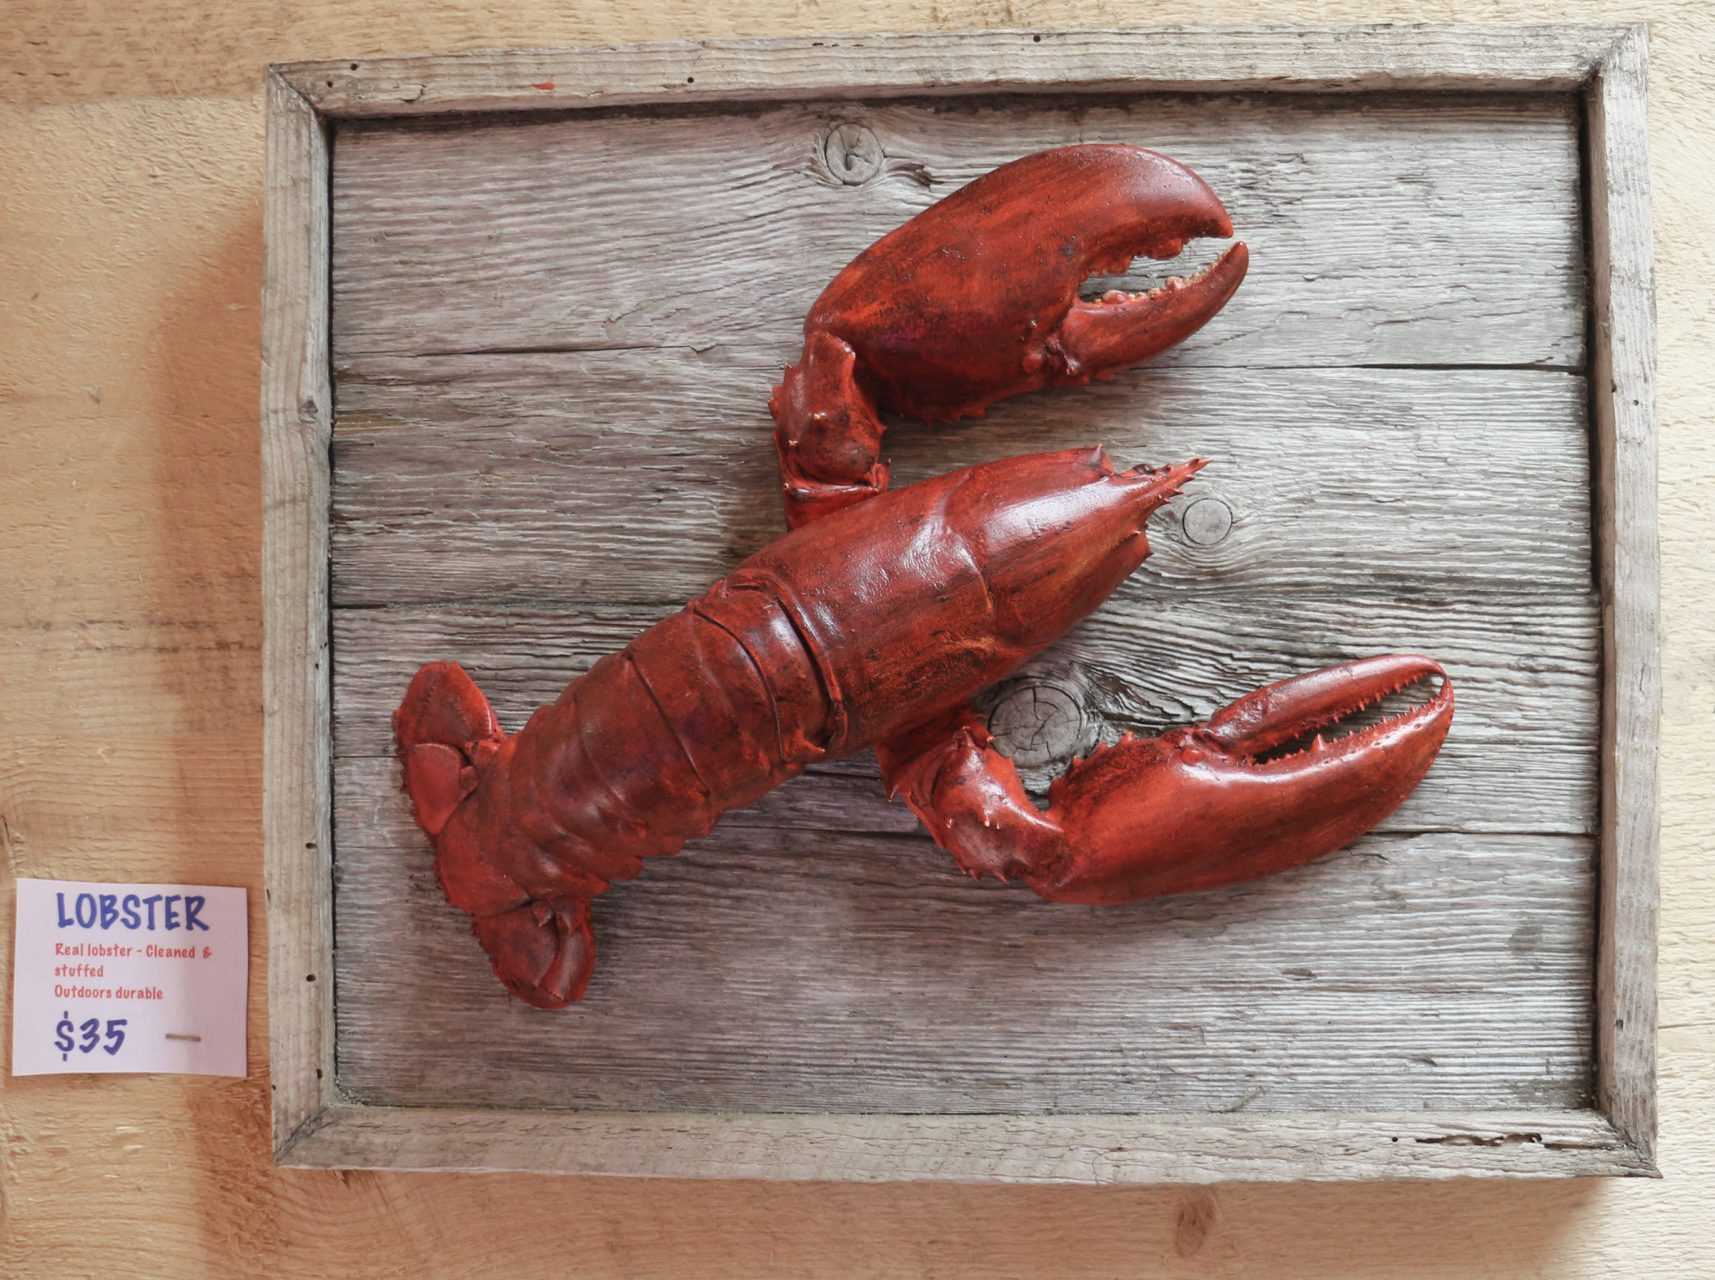 stuffed lobster on driftwood frame,$35.